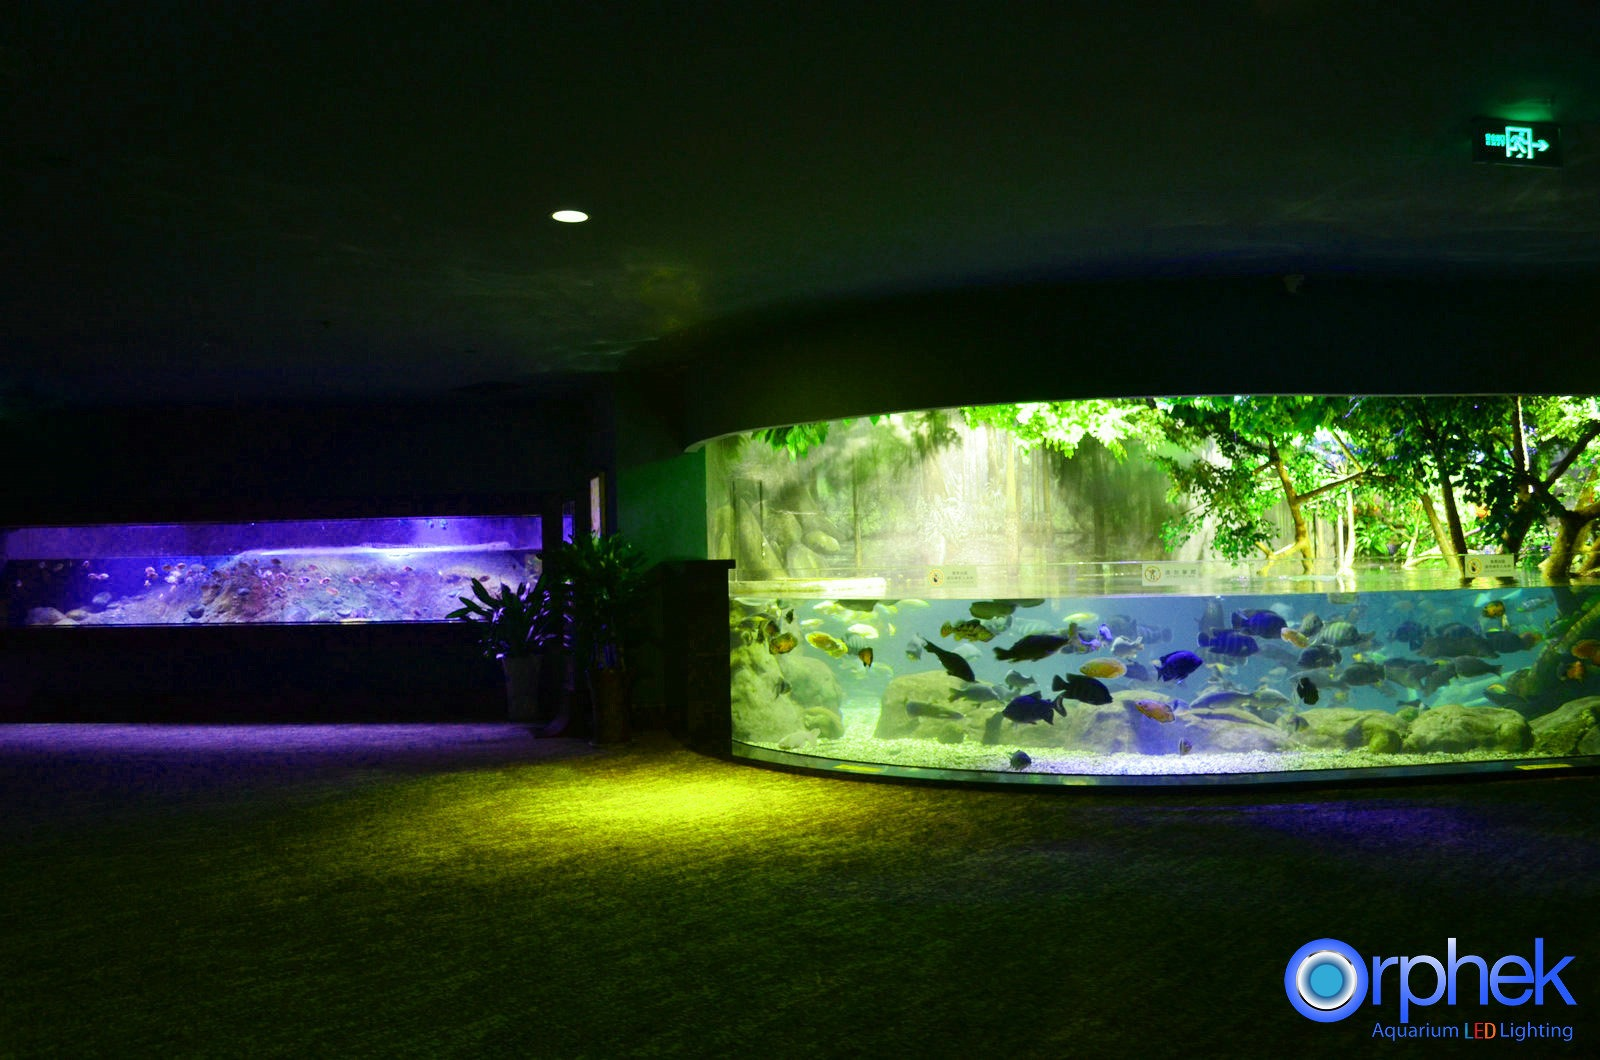 https://nl.orphek.com/led/wp-content/uploads/2015/07/chengdu-public-aquarium-LED-lighting-amazon-flooded-forest-51.jpg